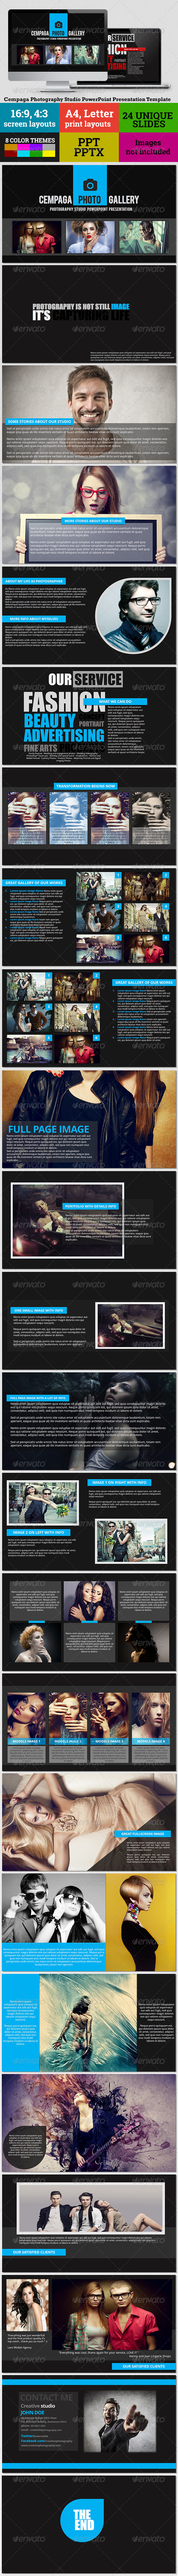 GraphicRiver Cempaga Photography Studio PowerPoint Presentation 7902073